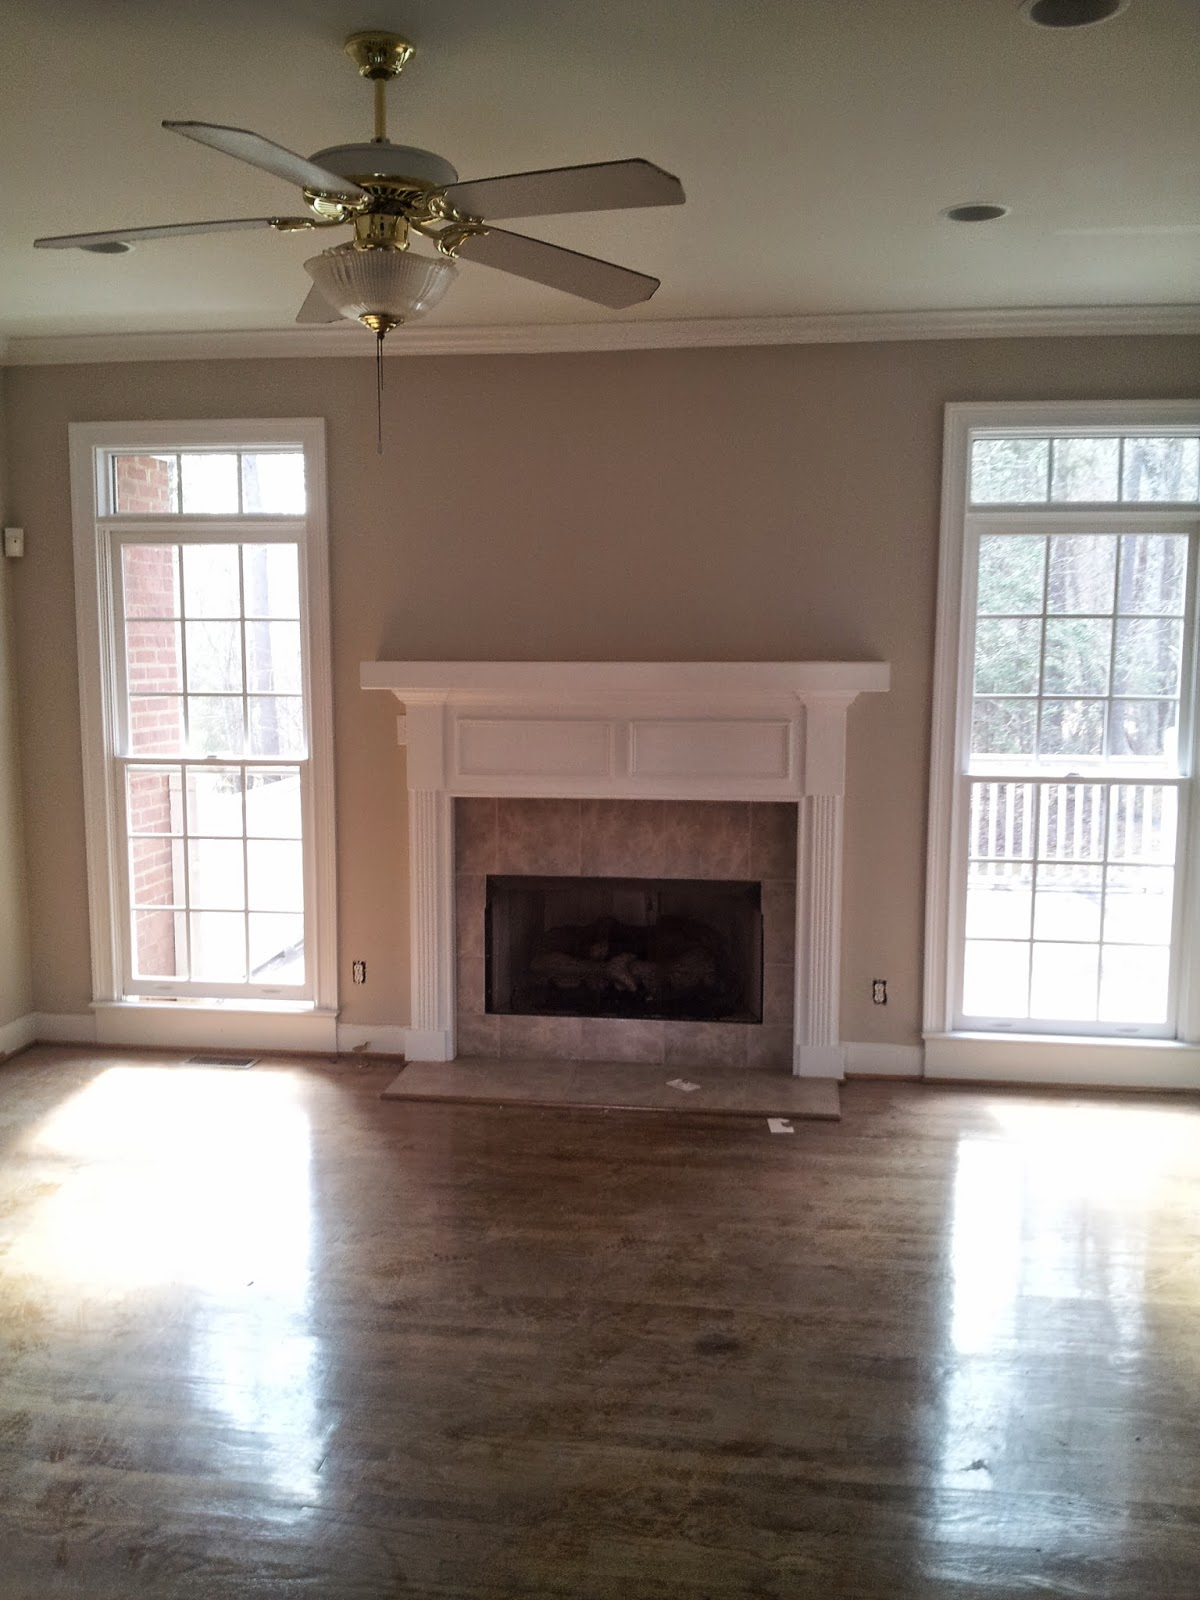 painters in Spartanburg, interior painting, house painters